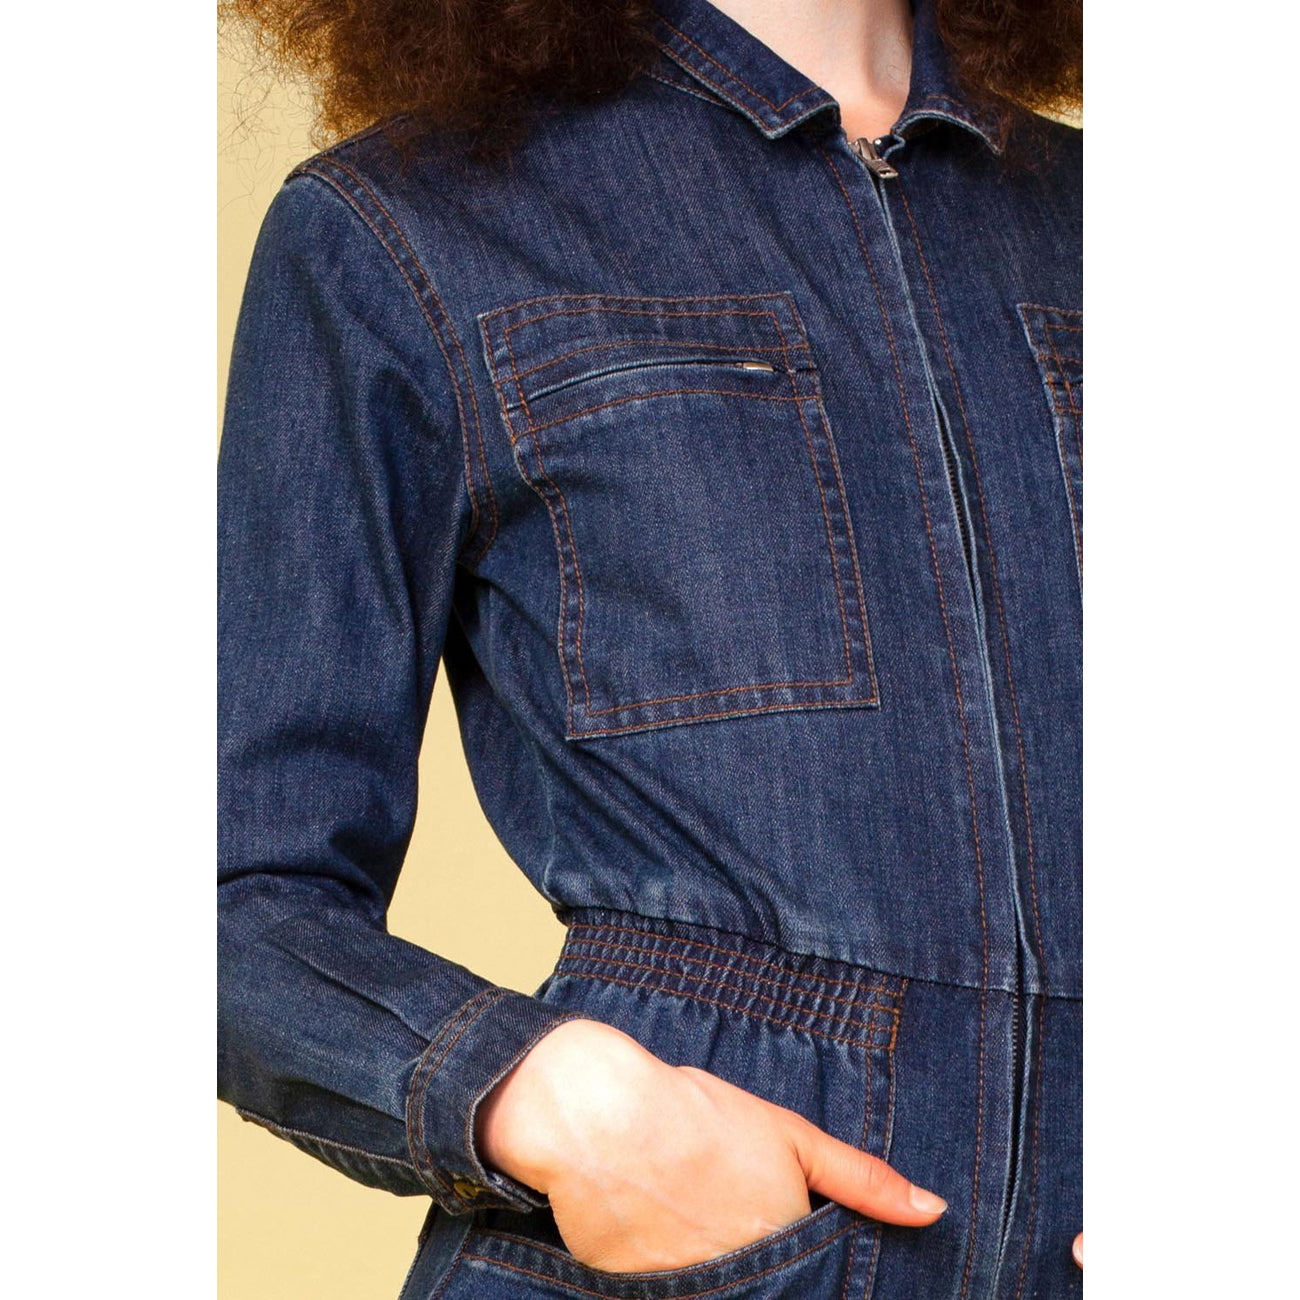 danny boilersuit in indigo denim